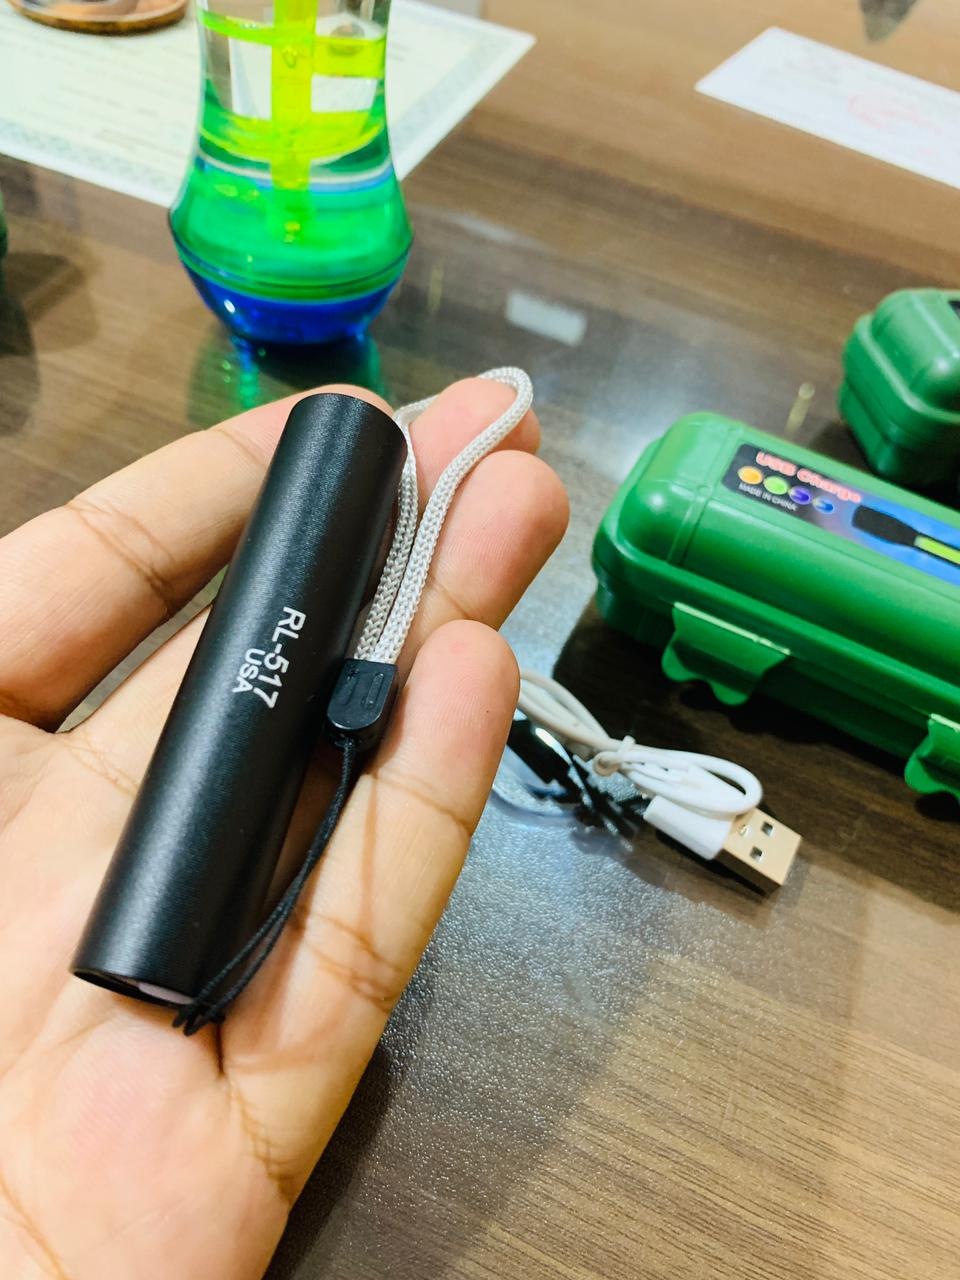 3 Guidance Modes Mini LED Flashlight USB Rechargeable LED Torch - Micro USB Charging with Cable and Case - Stainless Steel Design RL-517 USA